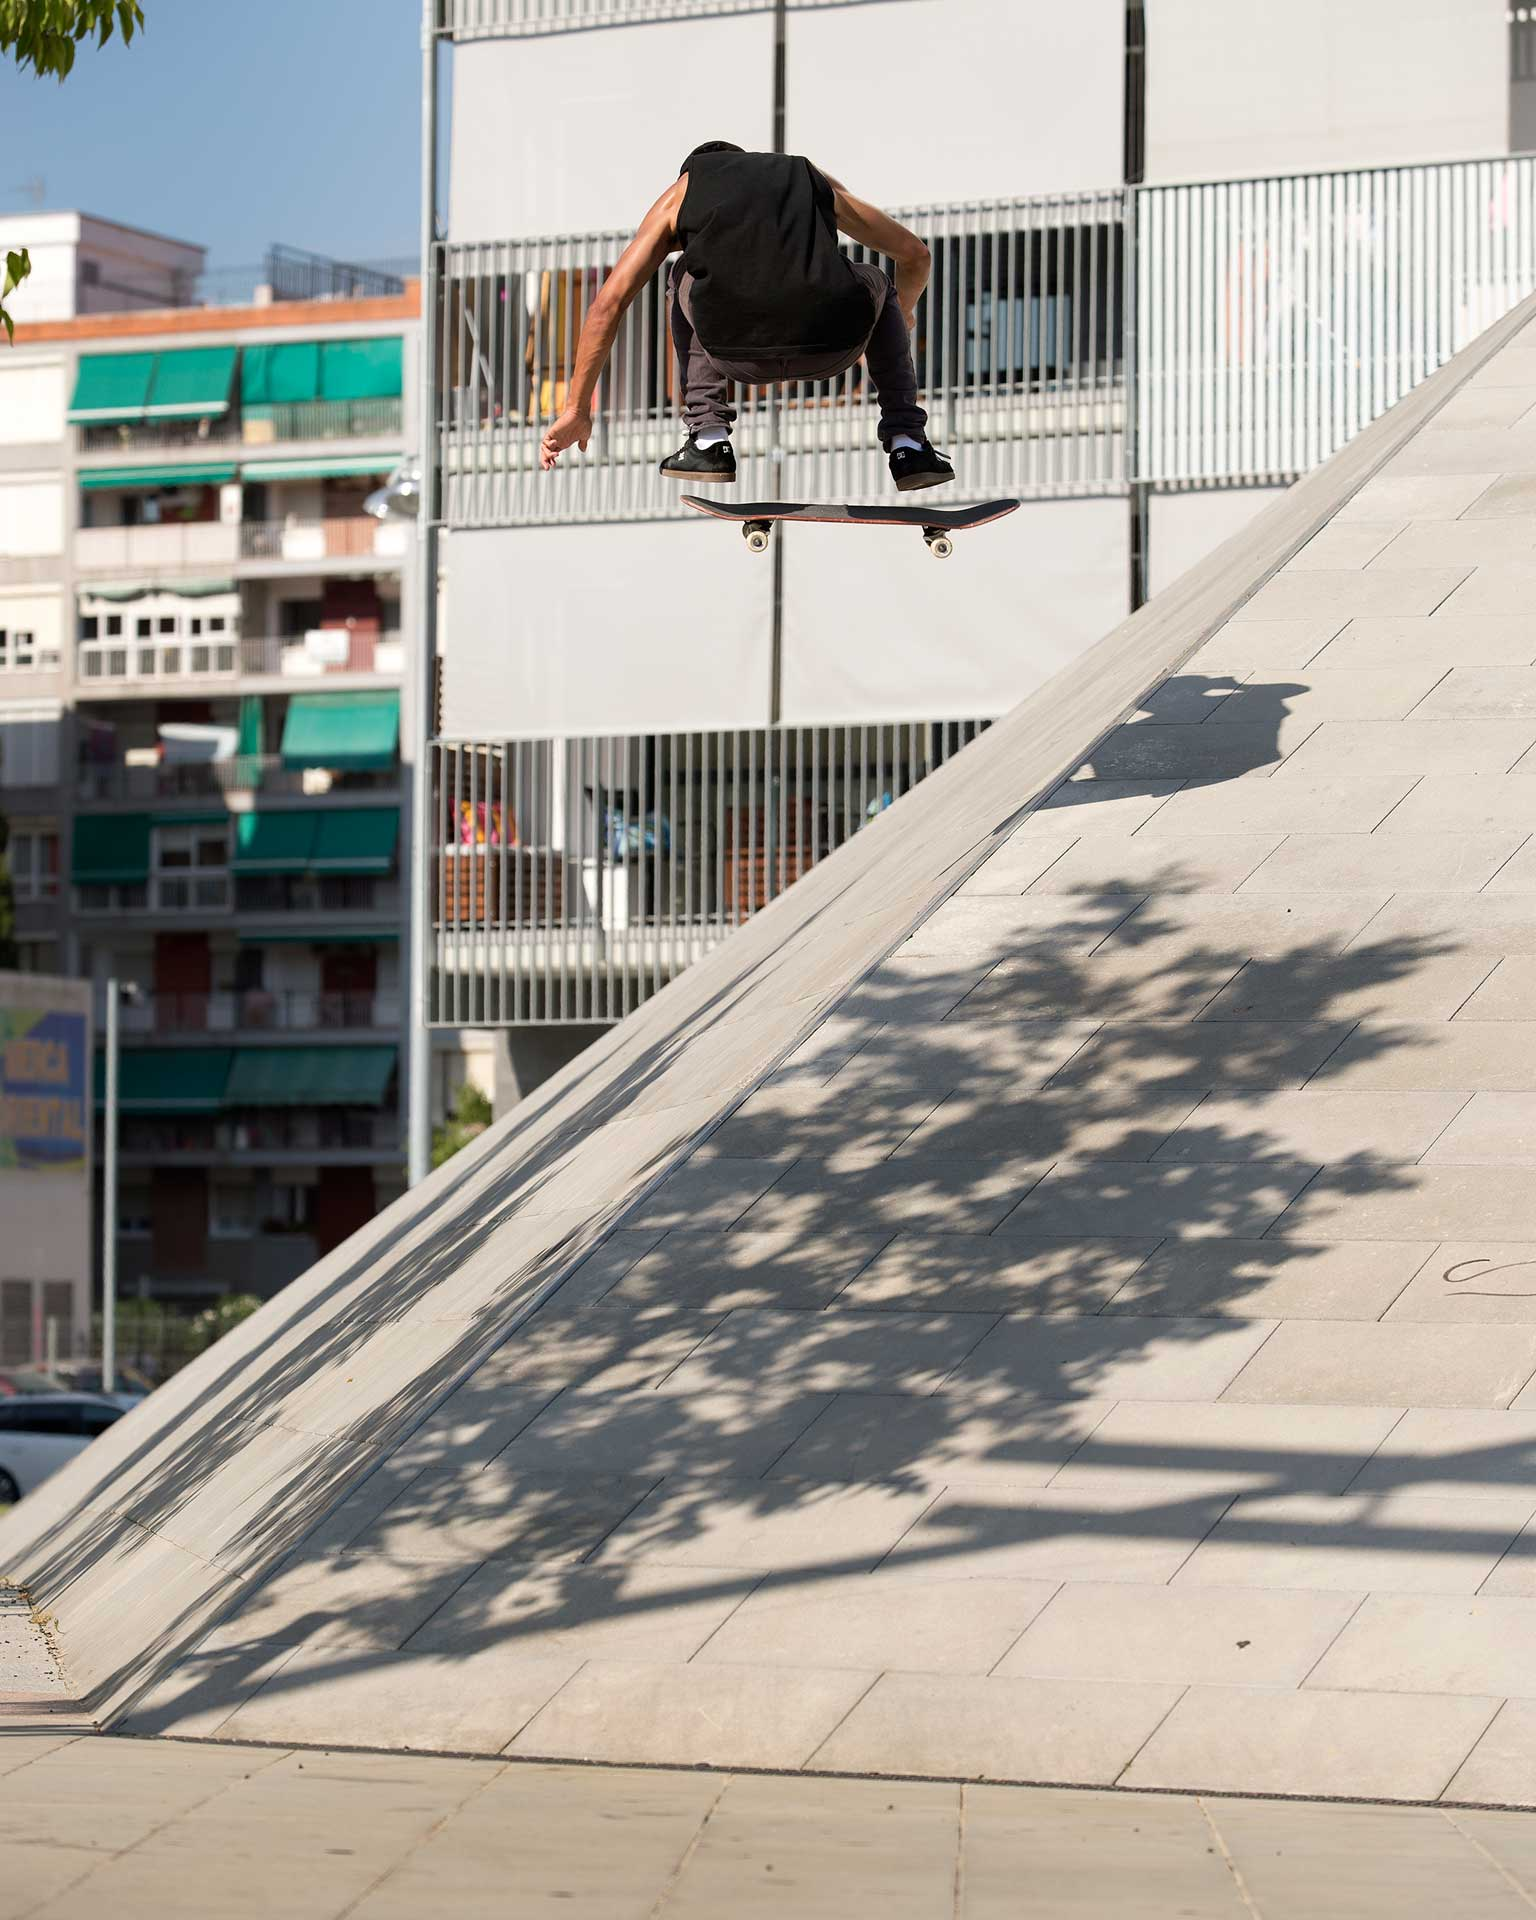 On a recent DC shoes trip to Barcelona, Spain, Nyjah pops a nollie heelflip to fakie over the hip at a picture perfect skate spot.